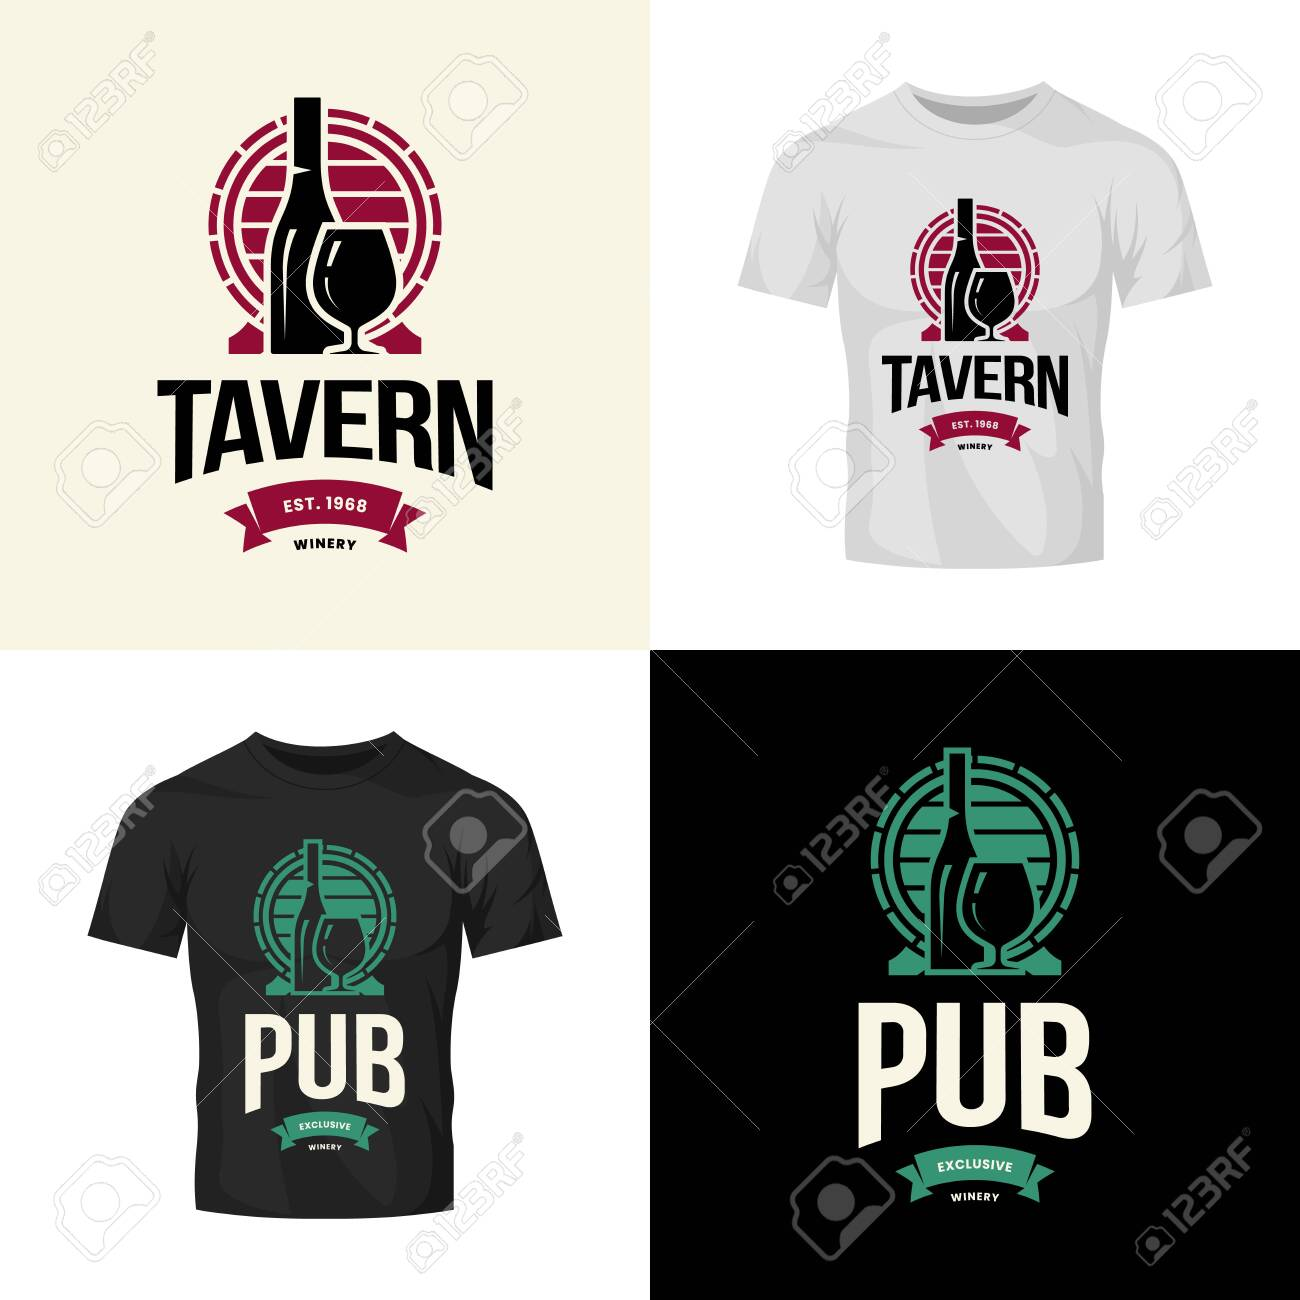 Modern wine vector isolated logo collection for tavern, restaurant, house, shop, store, club and cellar. Premium quality vinery logotype illustration set. Fashion brand badge design template bundle. - 120438779